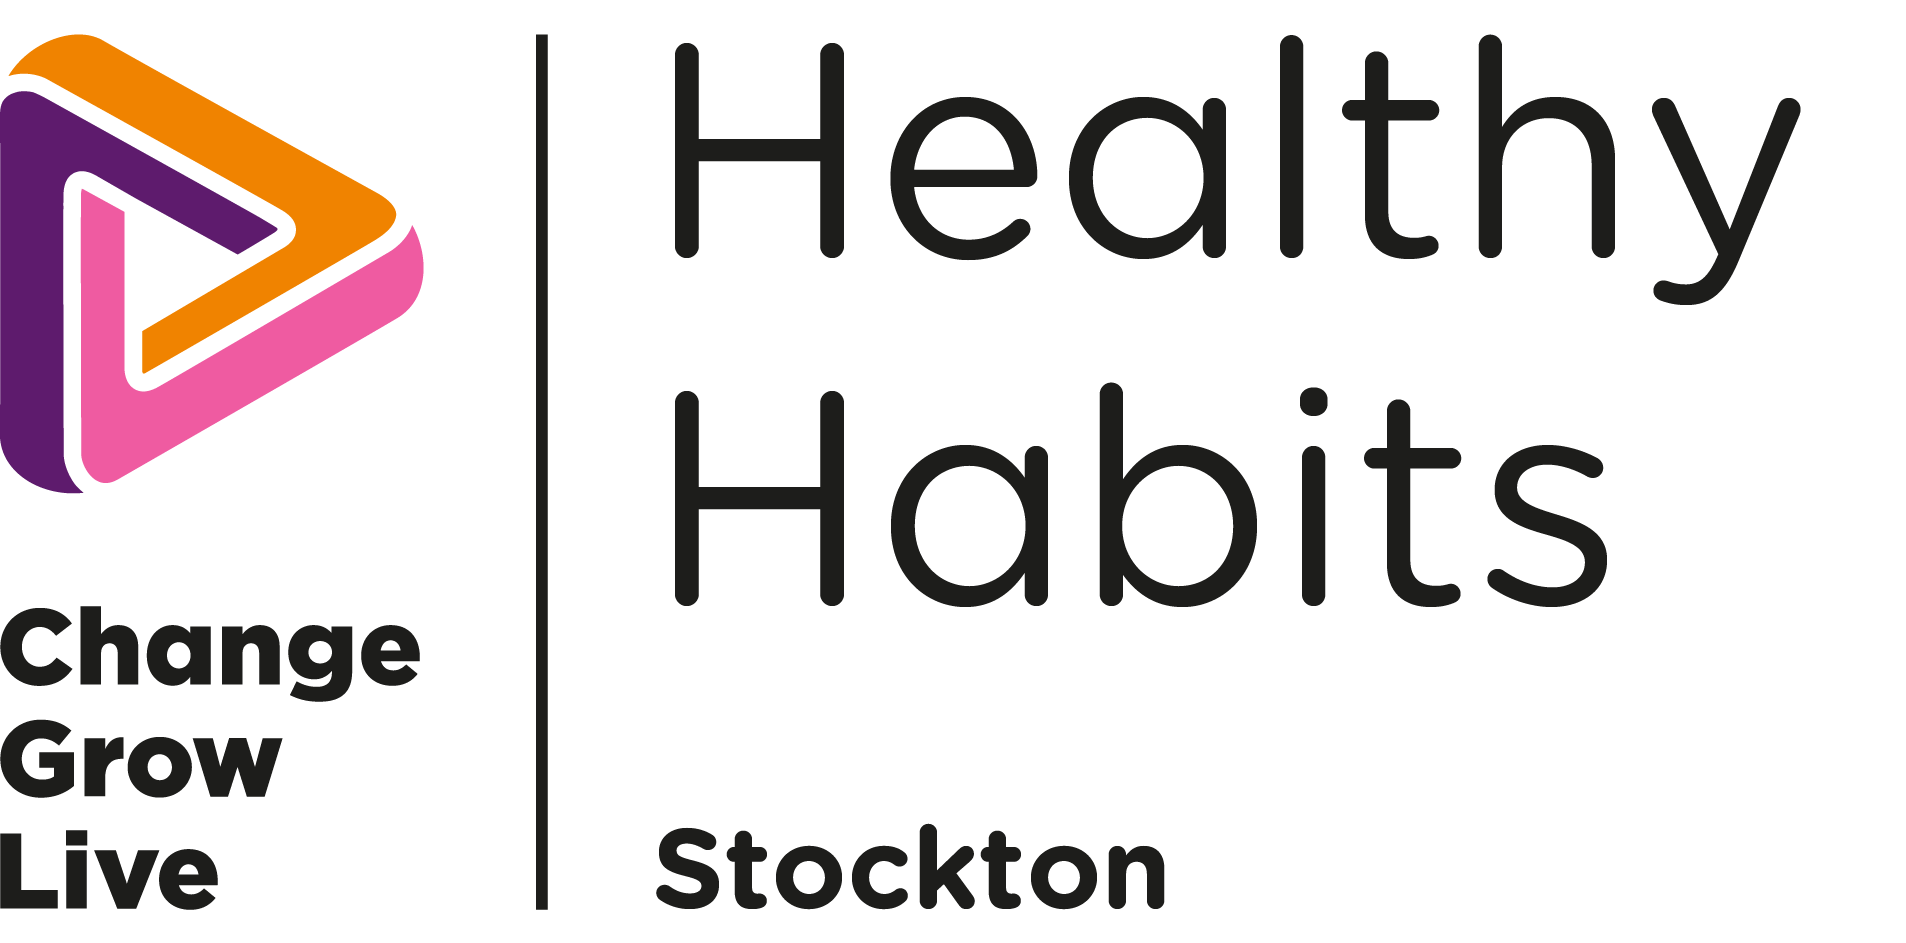 The logo for healthy habits Stockton in colour